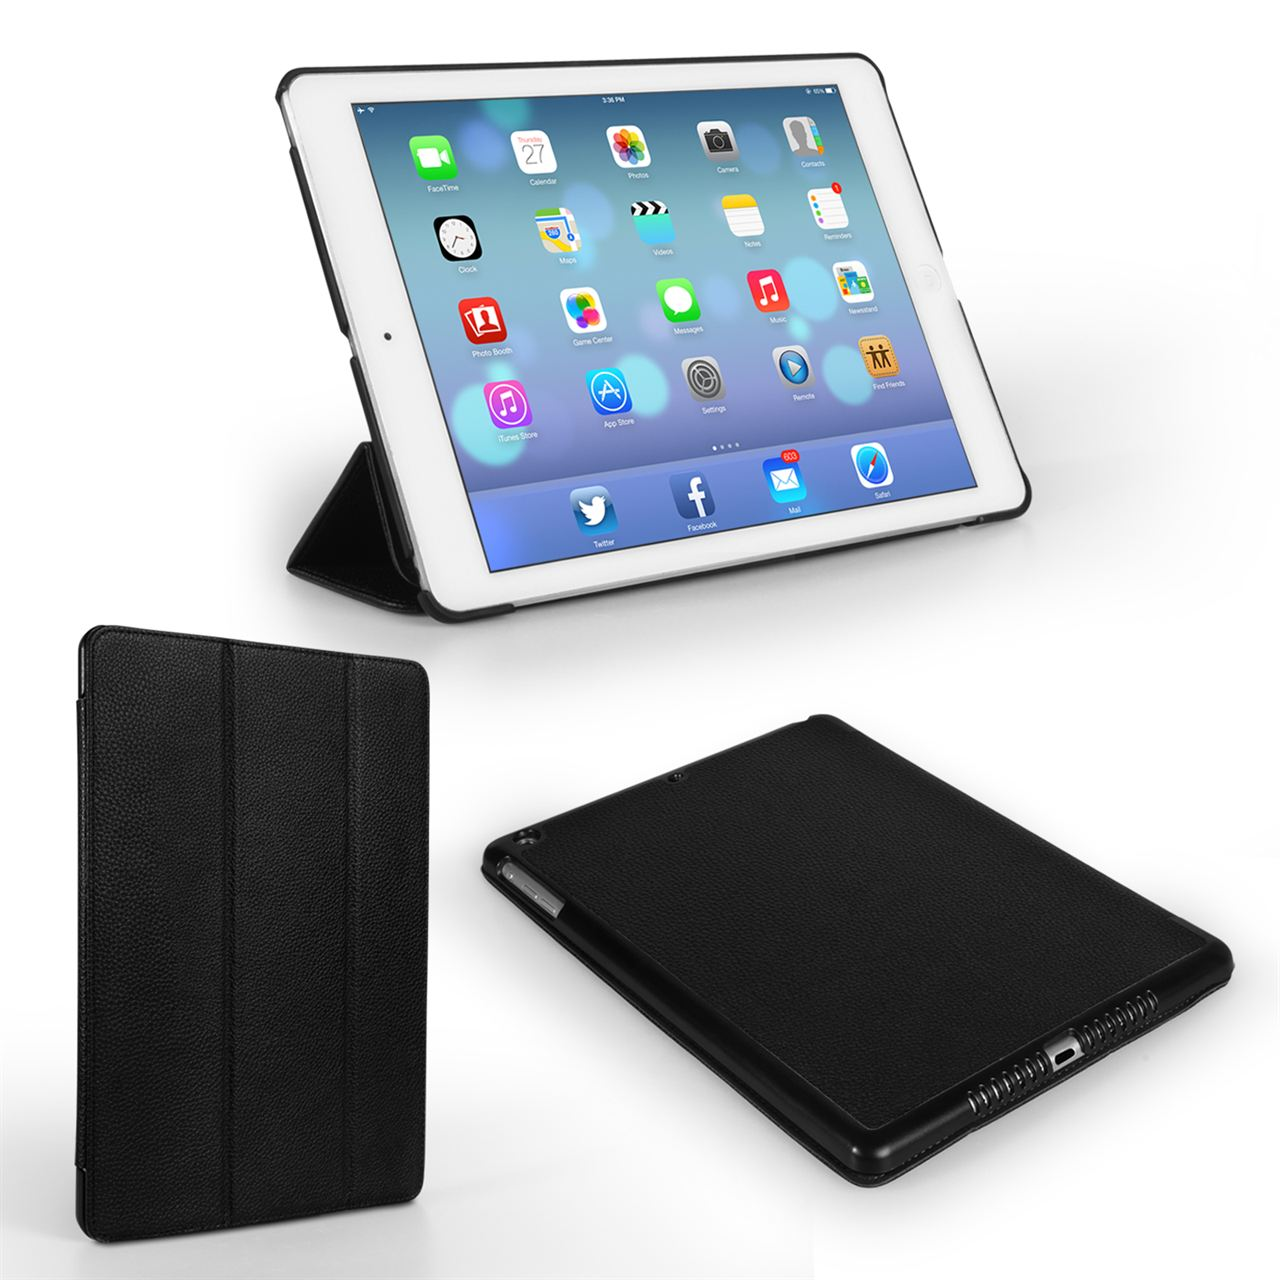 Caseflex iPad Air Textured Faux Leather Hardshell Stand Cover - Black